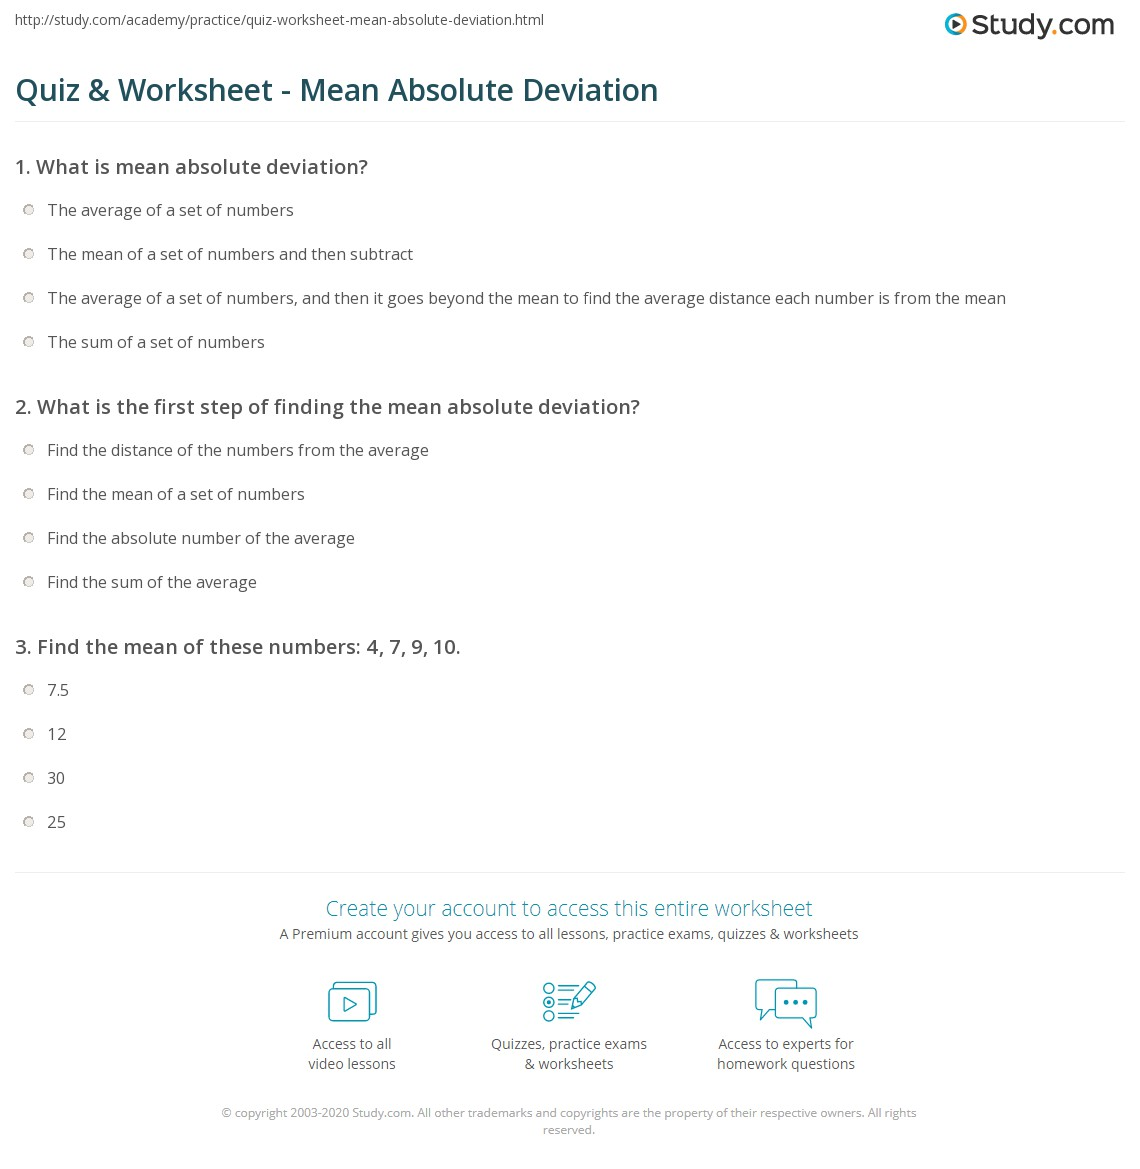 Quiz & Worksheet - Mean Absolute Deviation | Study.com